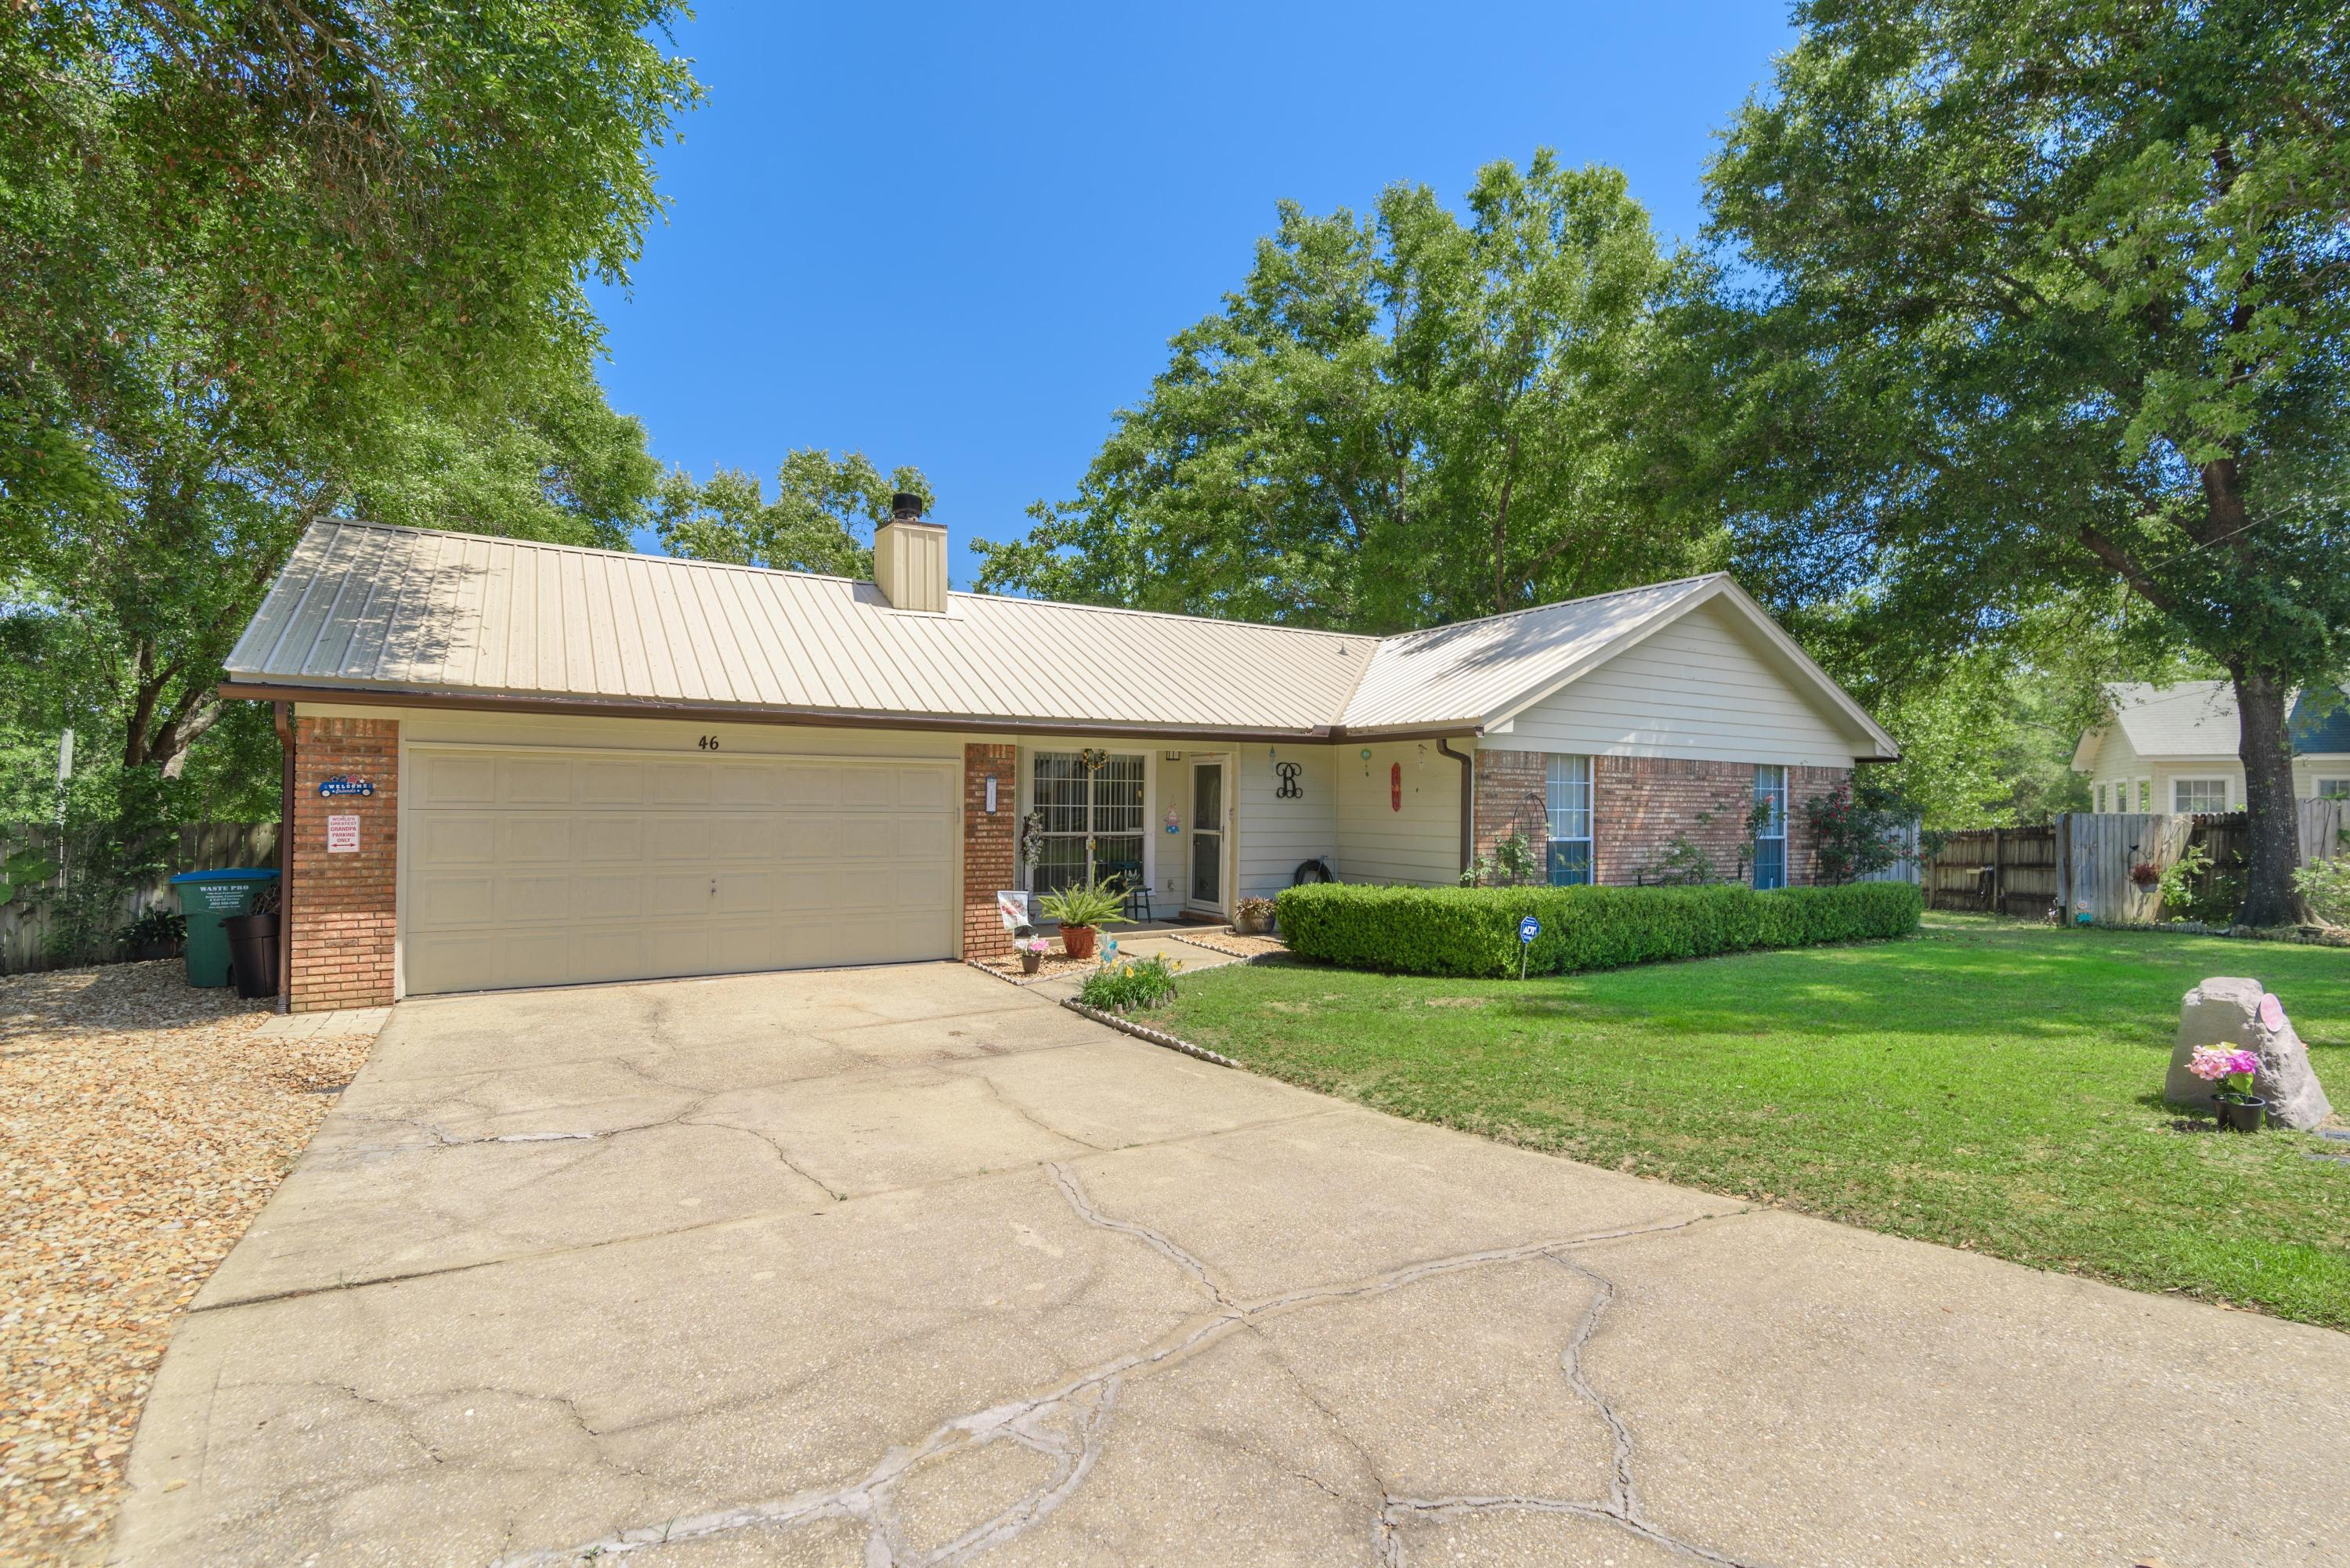 Photo of home for sale at 46 Abbey, Crestview FL